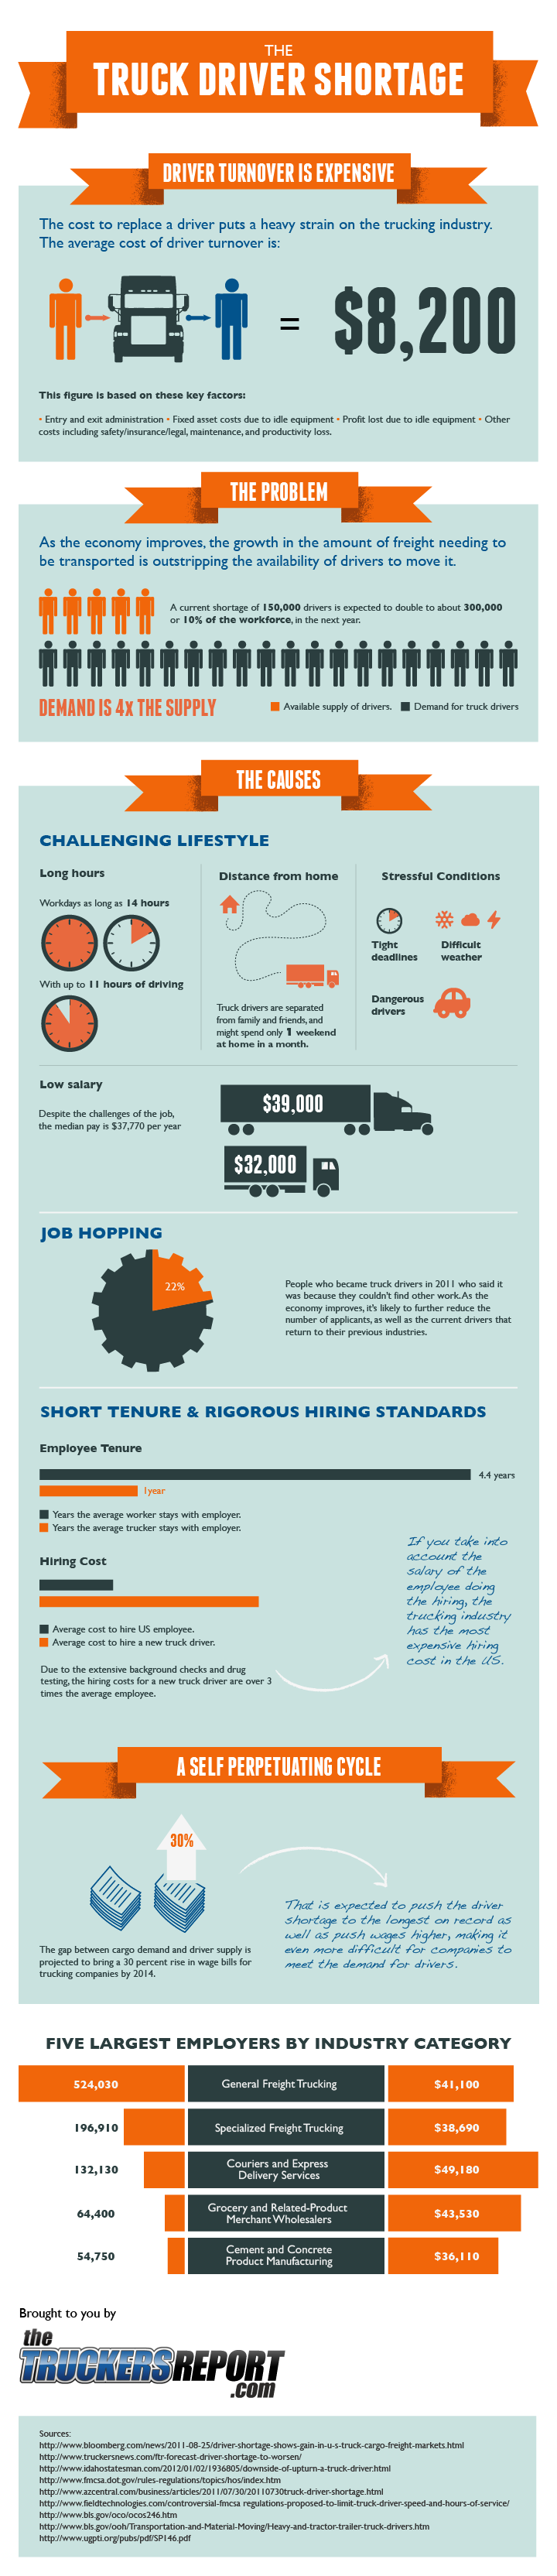 Truck Driver Shortage and Turnover Infographic